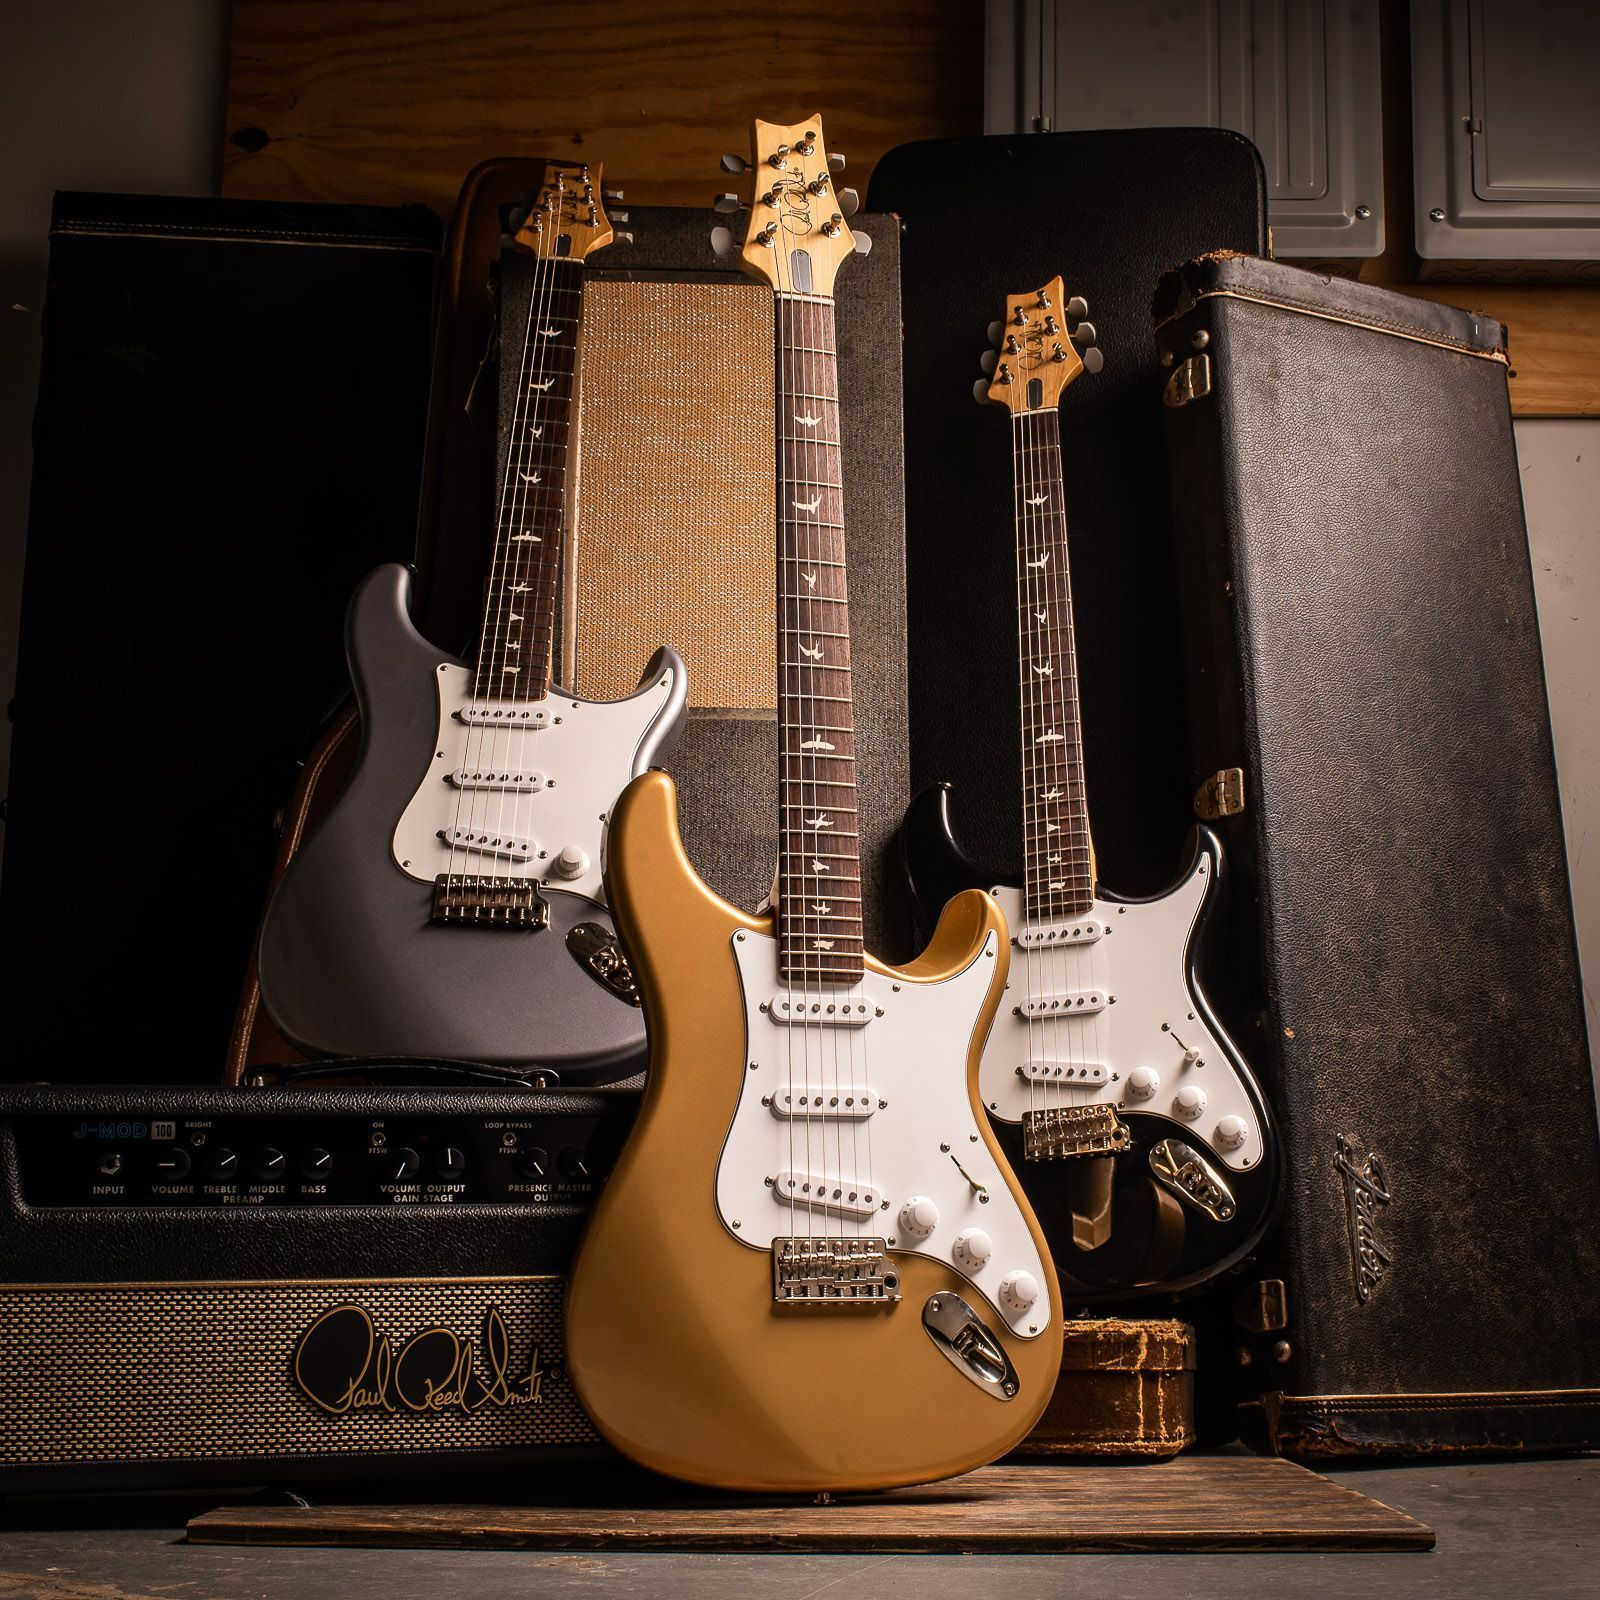 The New Prs Collaboration With John Mayer The Silver Sky Comes In A Lot More Finishes Than Just Silver Chicagomusi In 2020 Prs Guitar John Mayer Guitar Photography